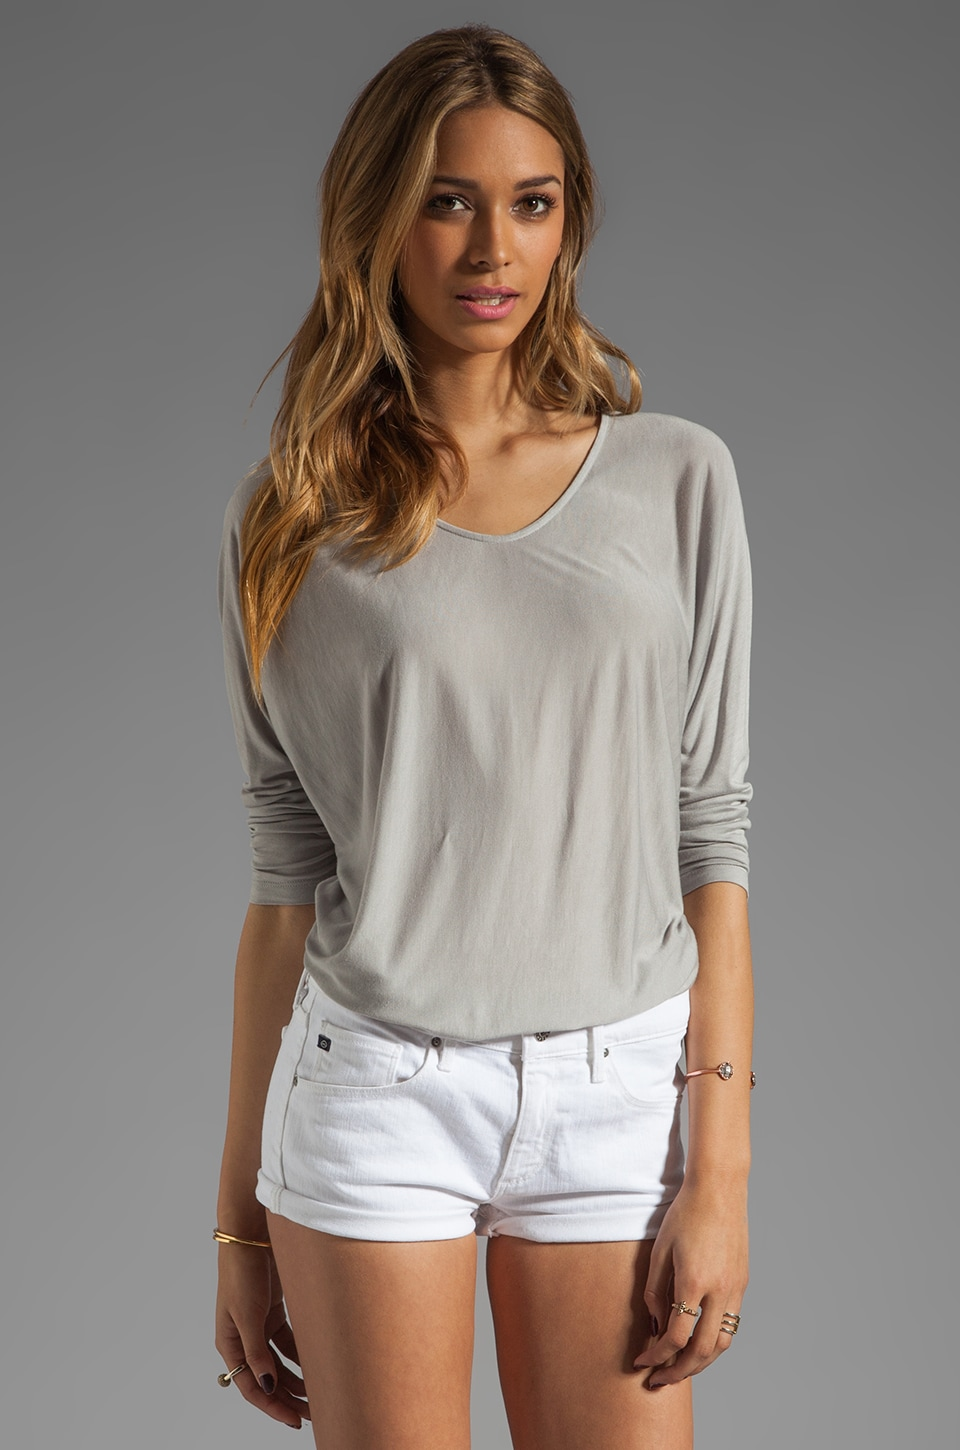 Vince Tees V-neck Top in Dream